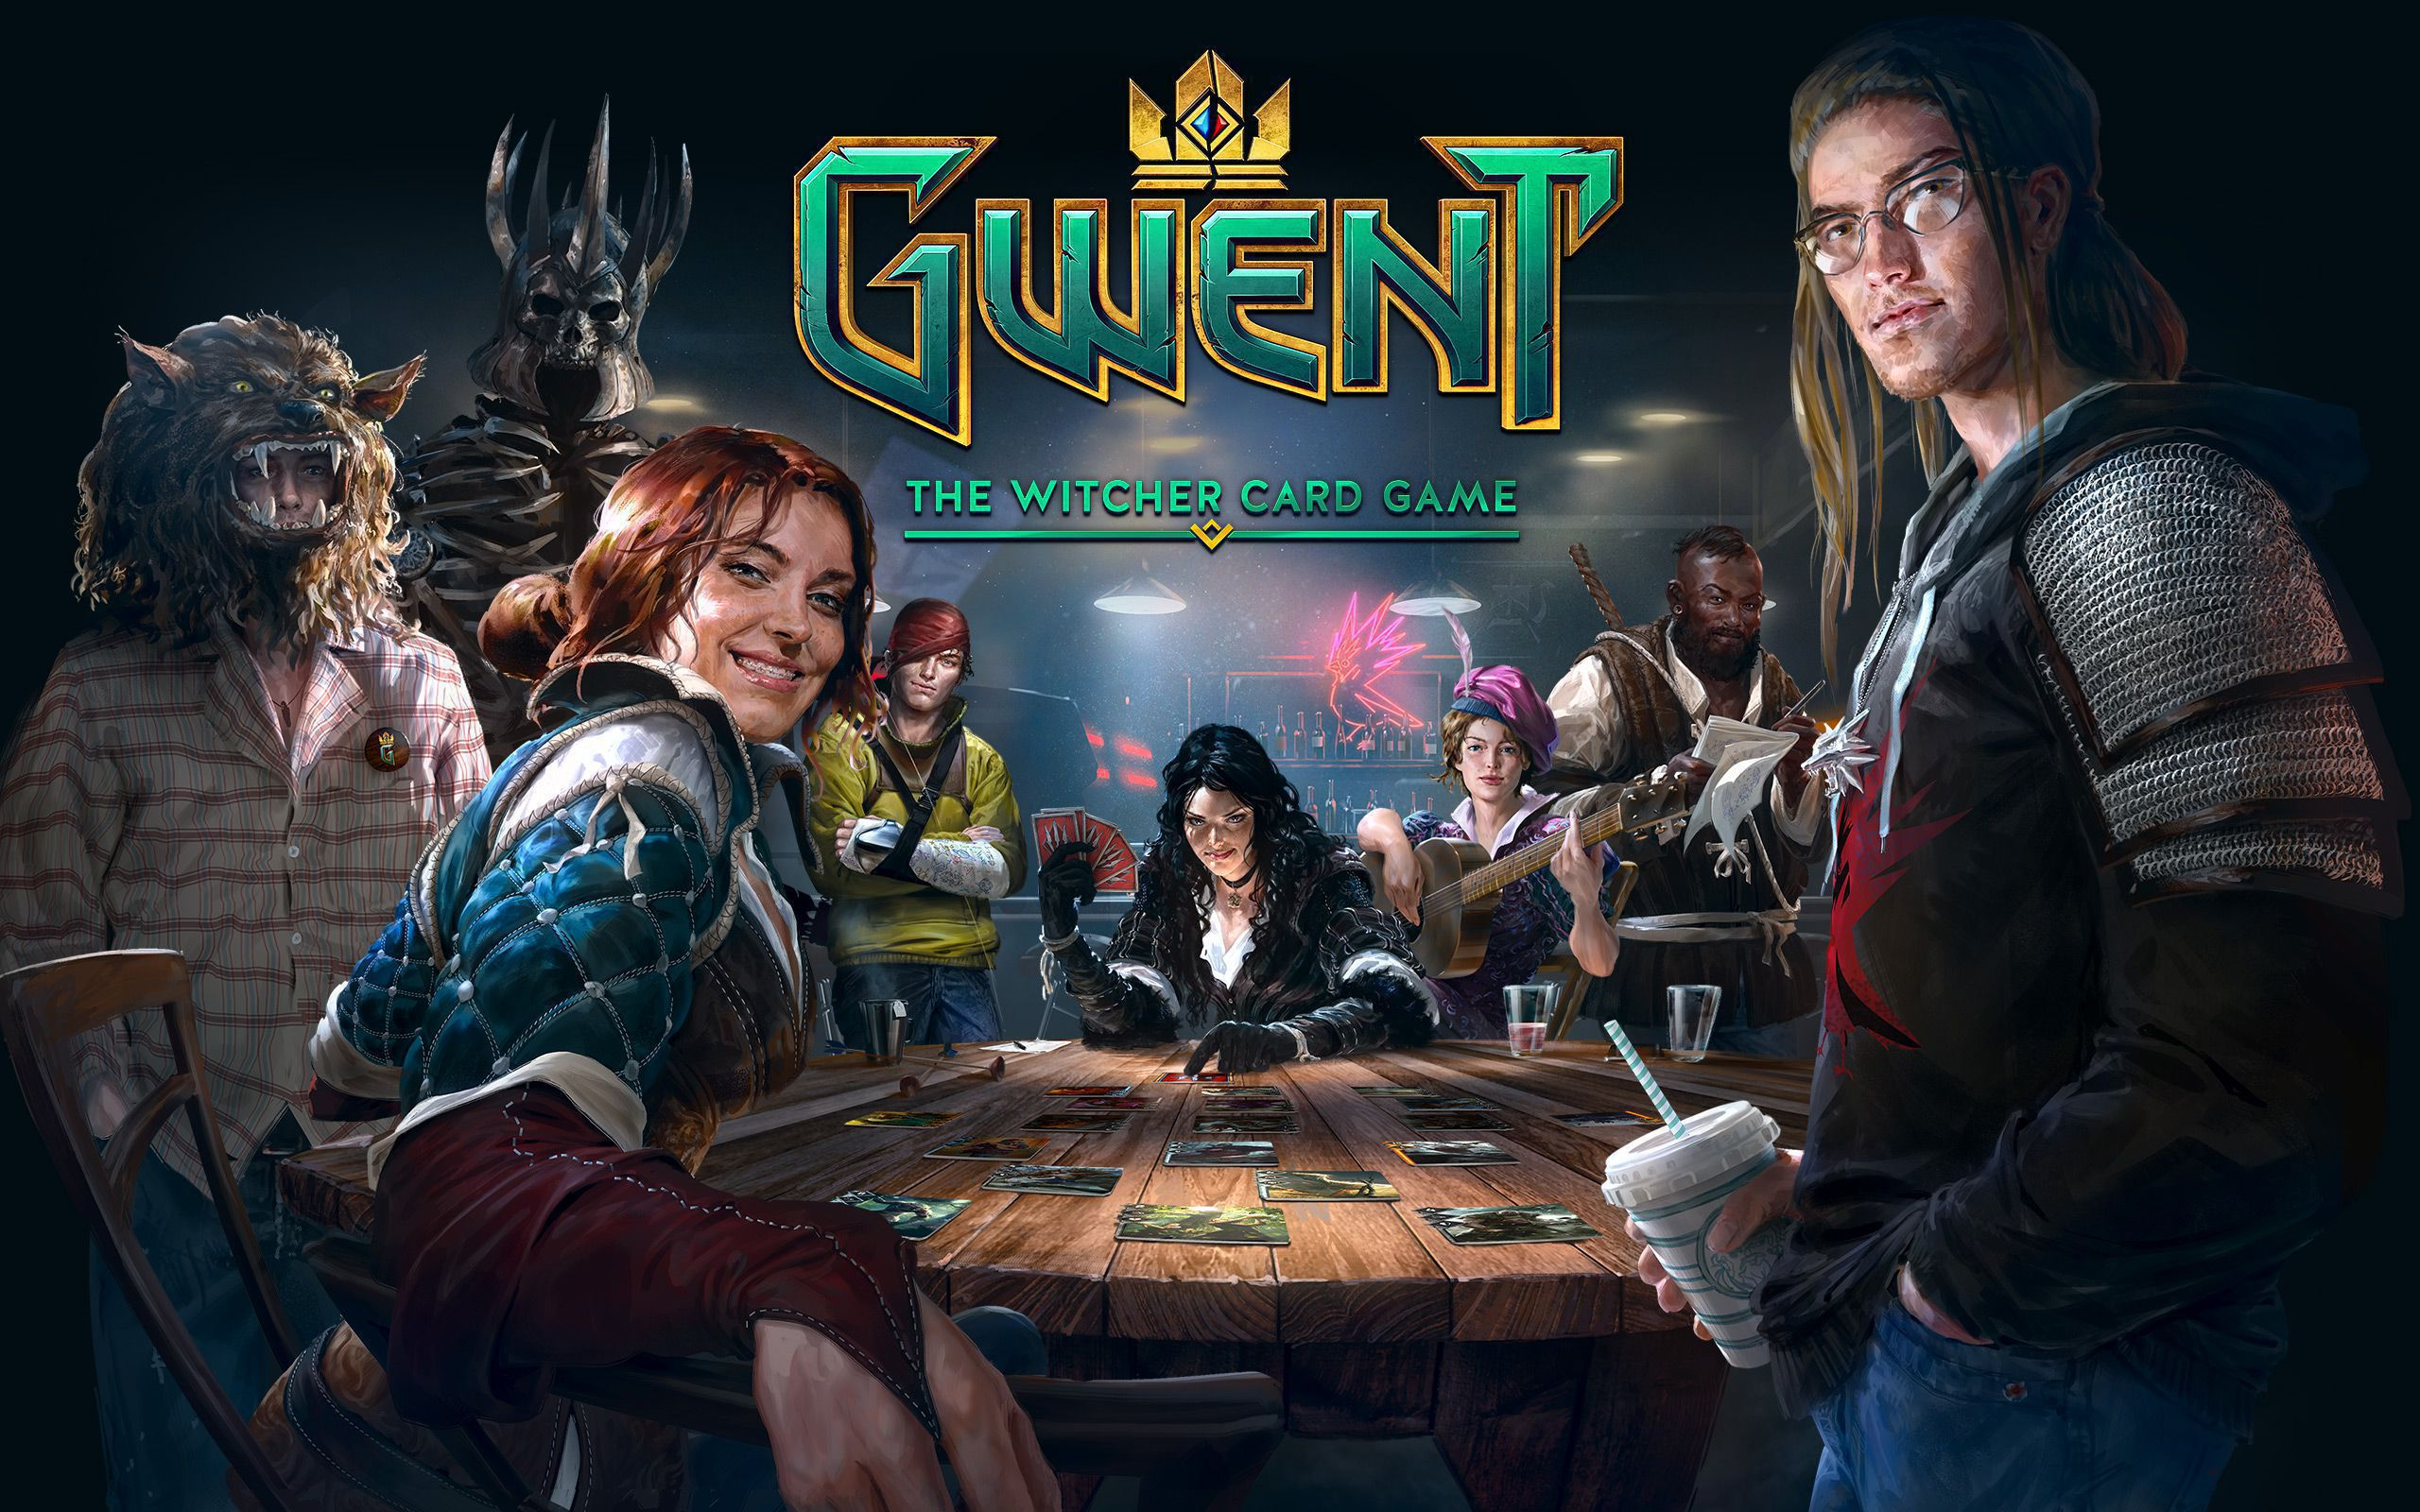 Gwent The Witcher Card Game Wallpaper